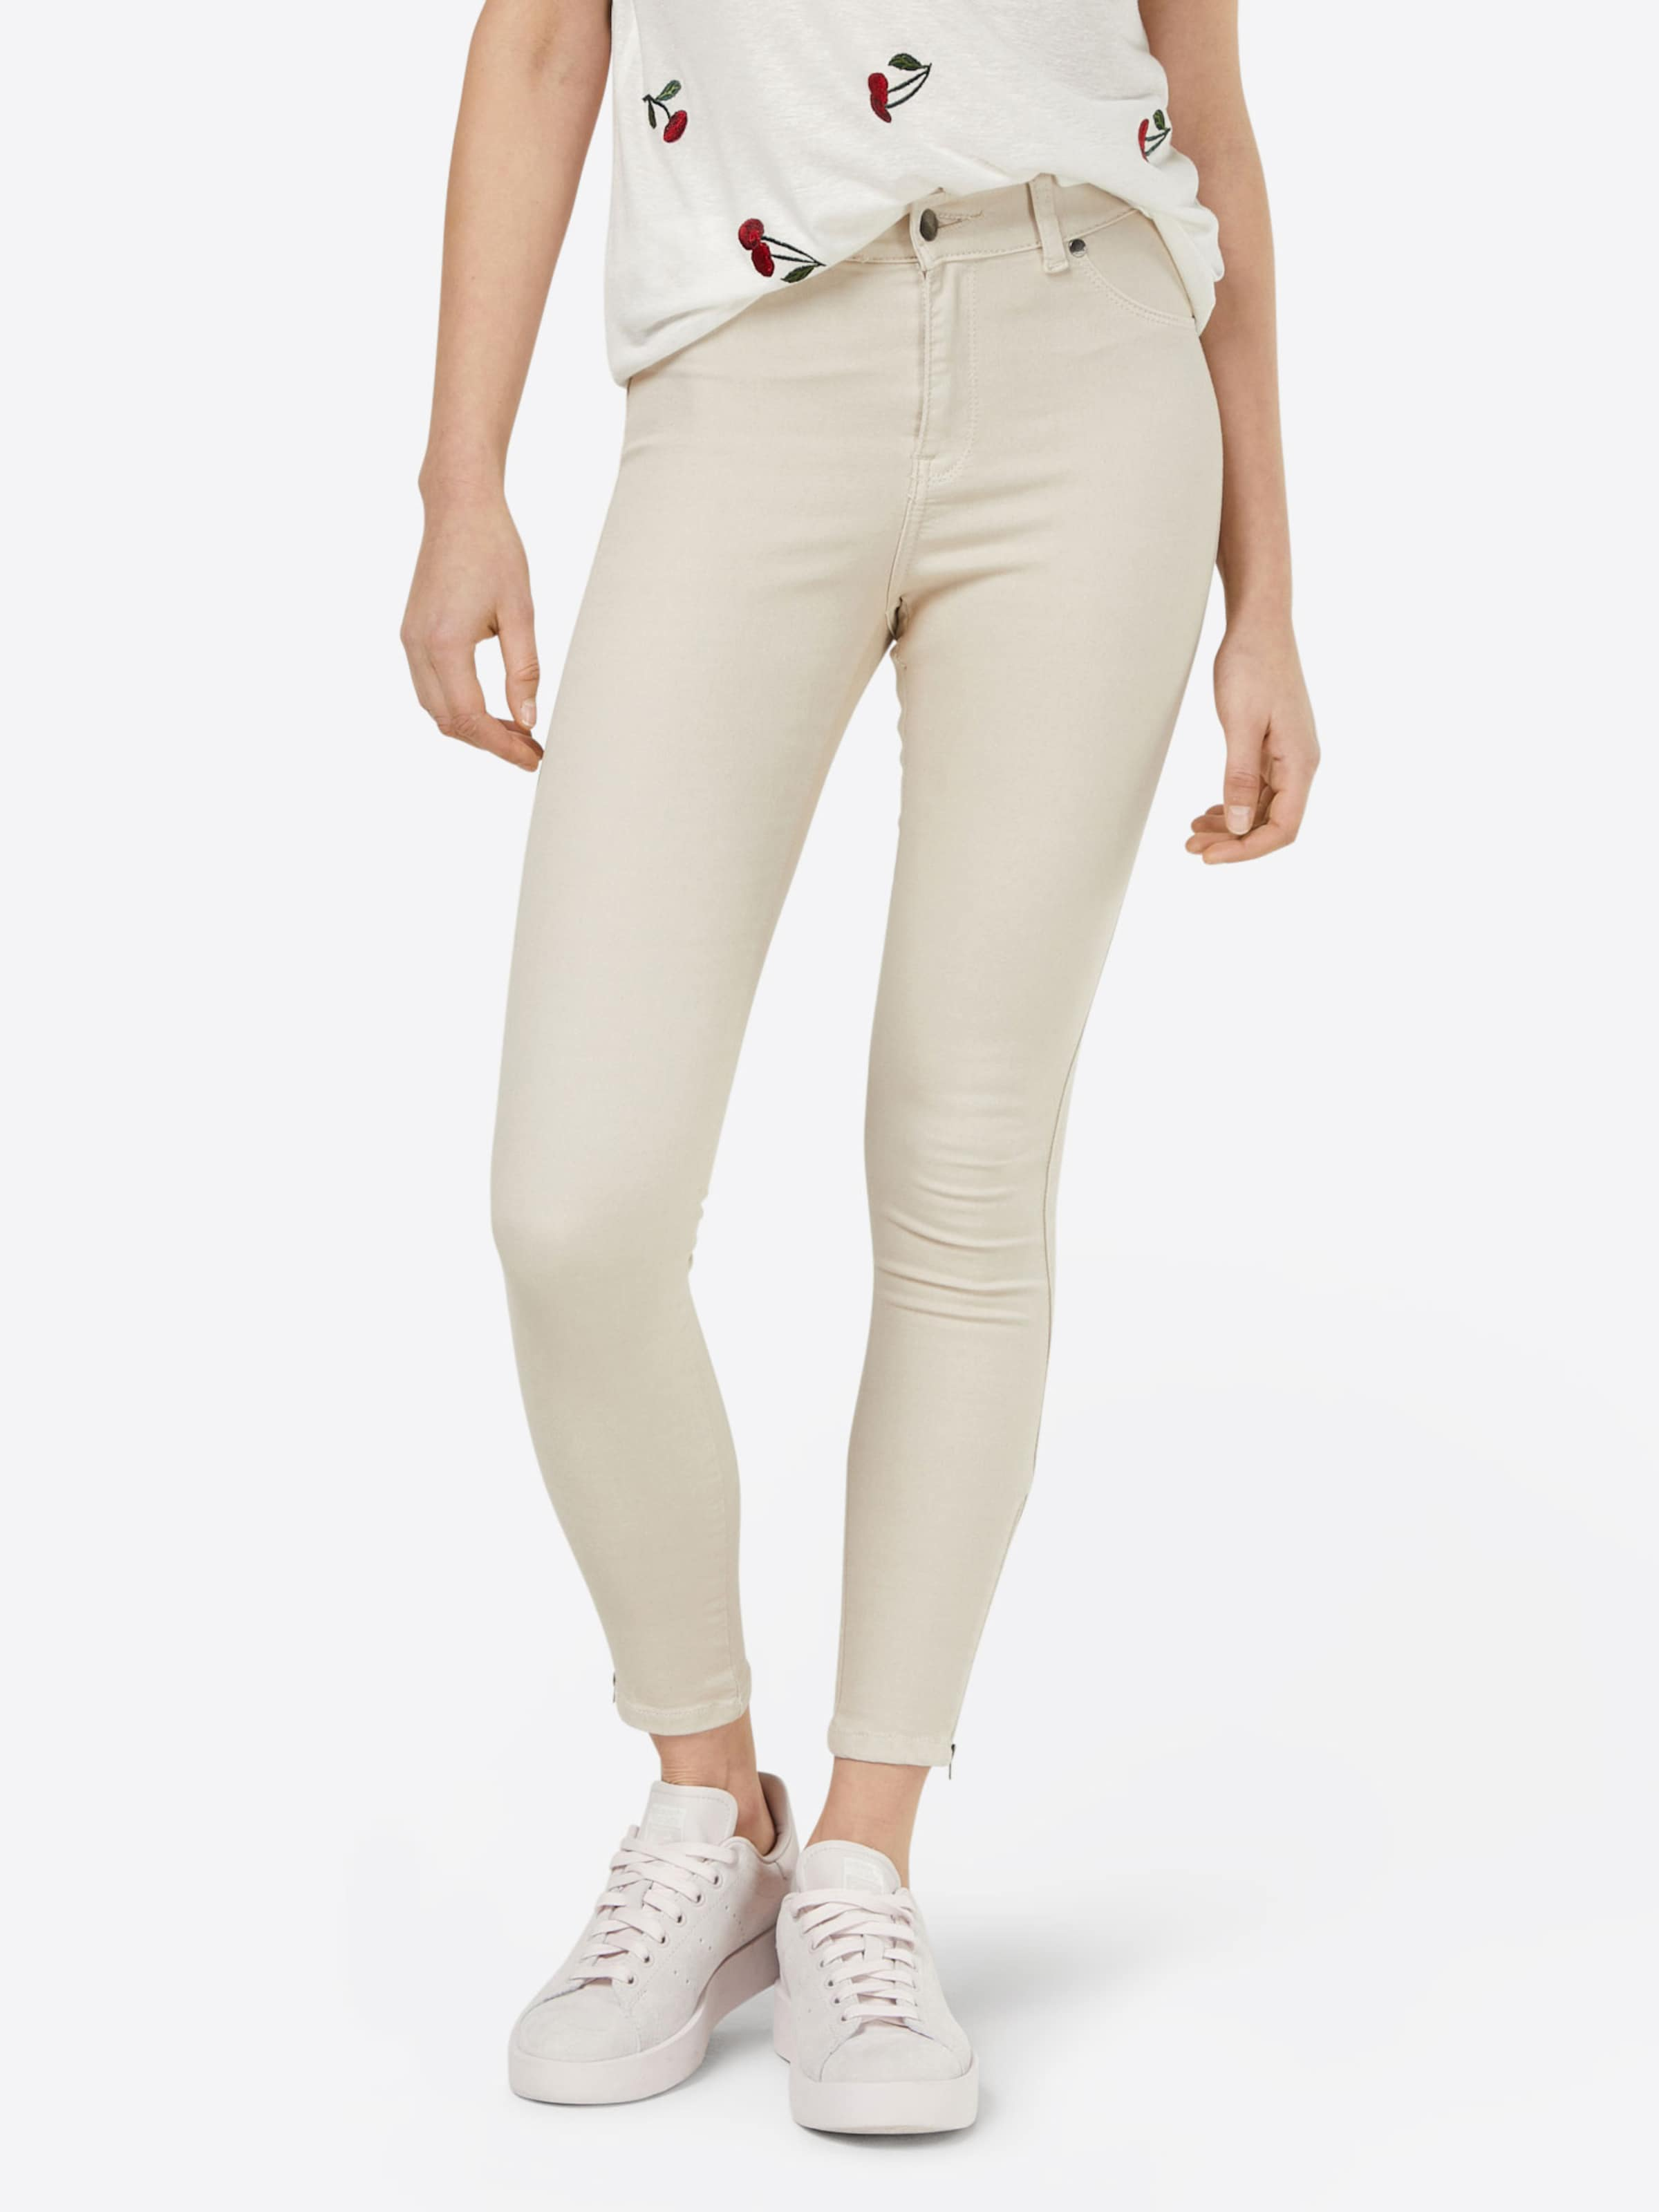 'domino' High Beige In DrDenim Waist Jeggings kXPTwOZiu